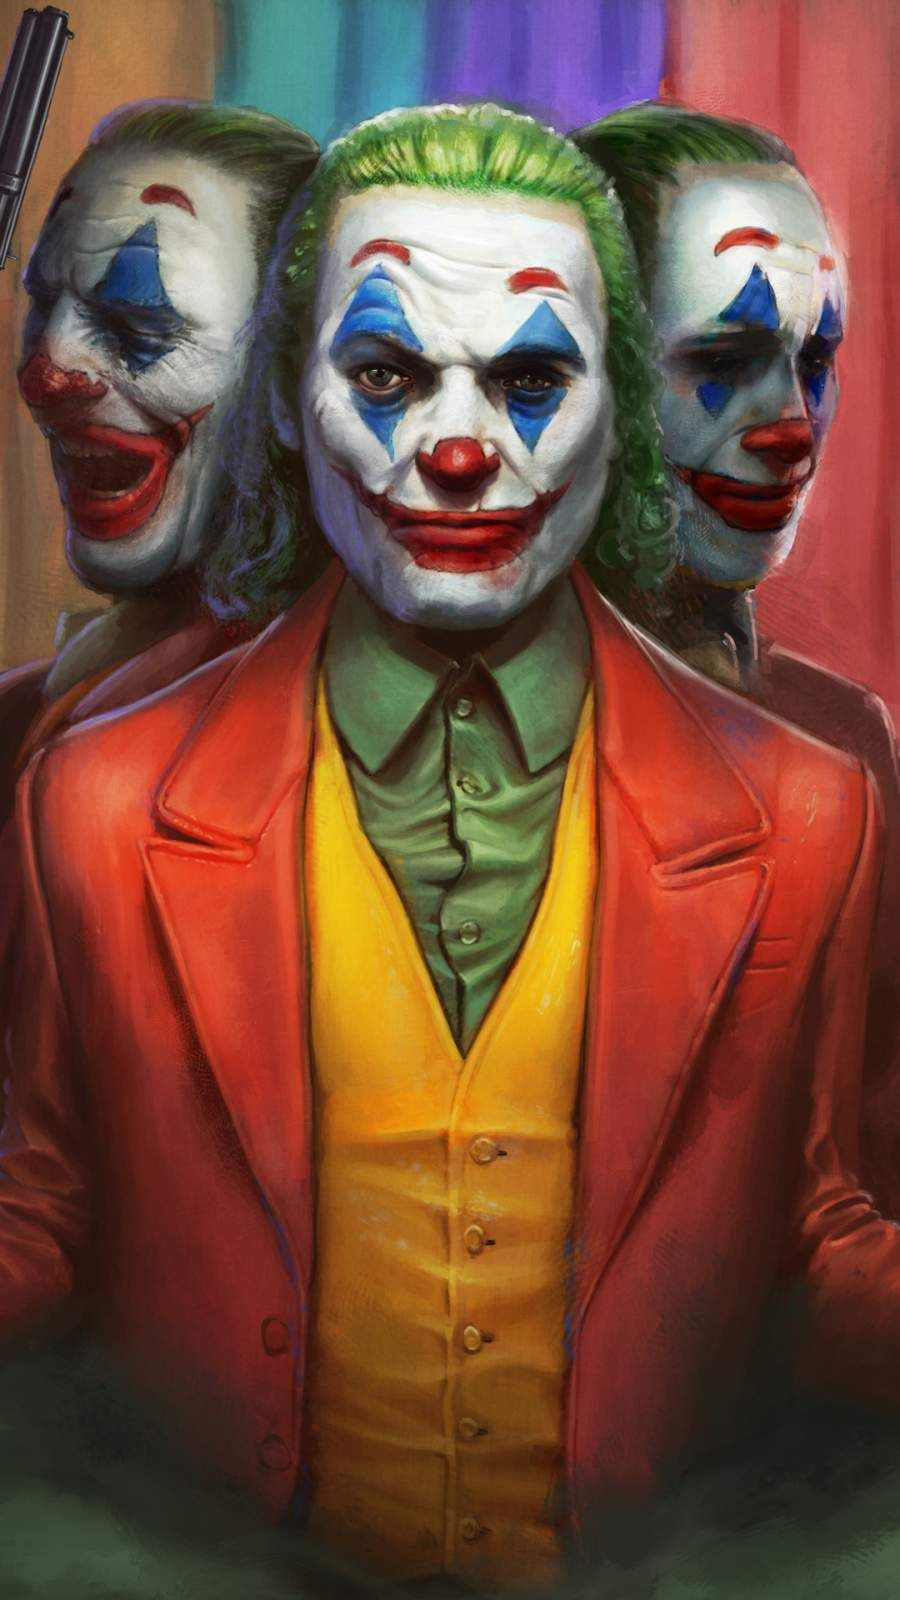 Joker Faces Iphone Wallpaper Joker Face Joker Wallpapers Joker